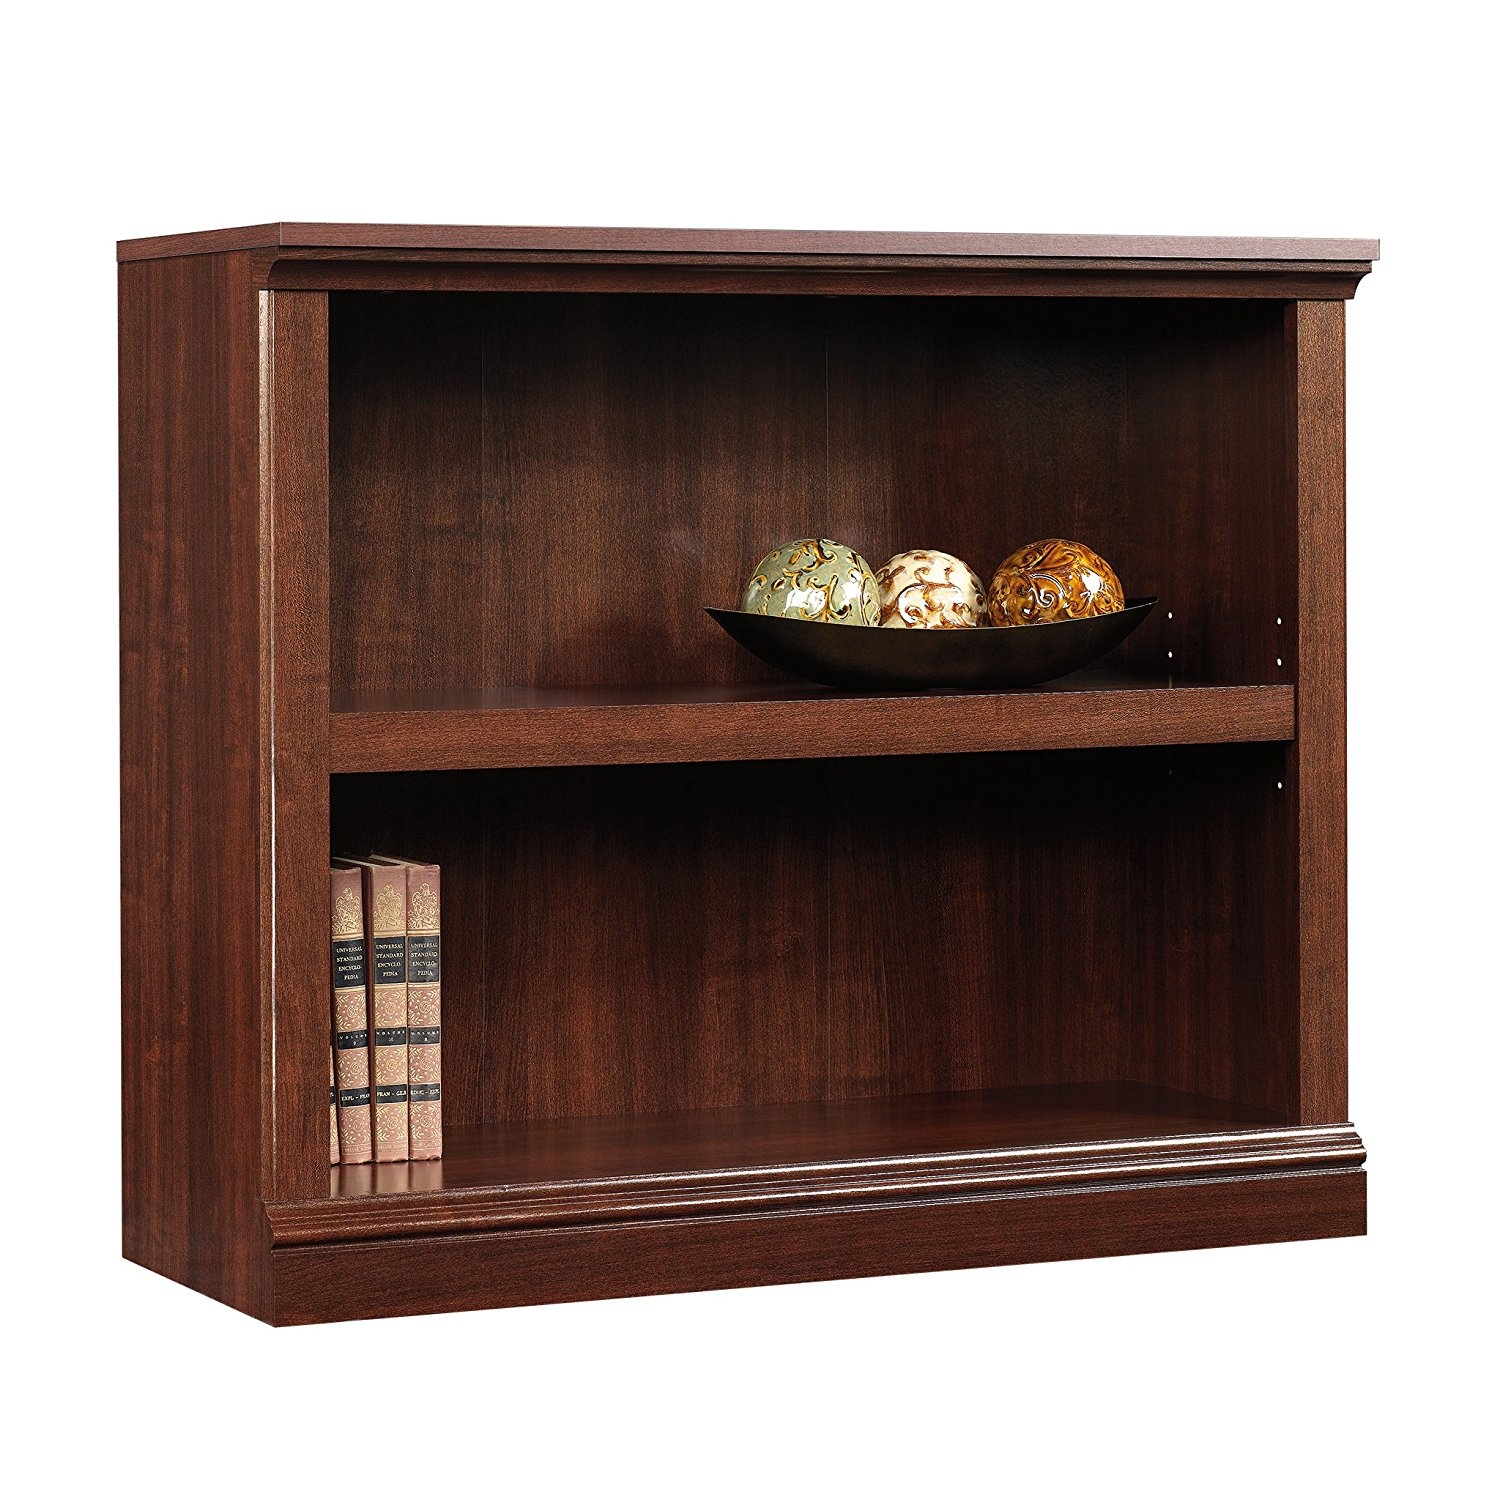 Amazon Sauder 2 Shelf Bookcase Select Cherry Finish Kitchen Intended For High Quality Bookcases (View 2 of 15)